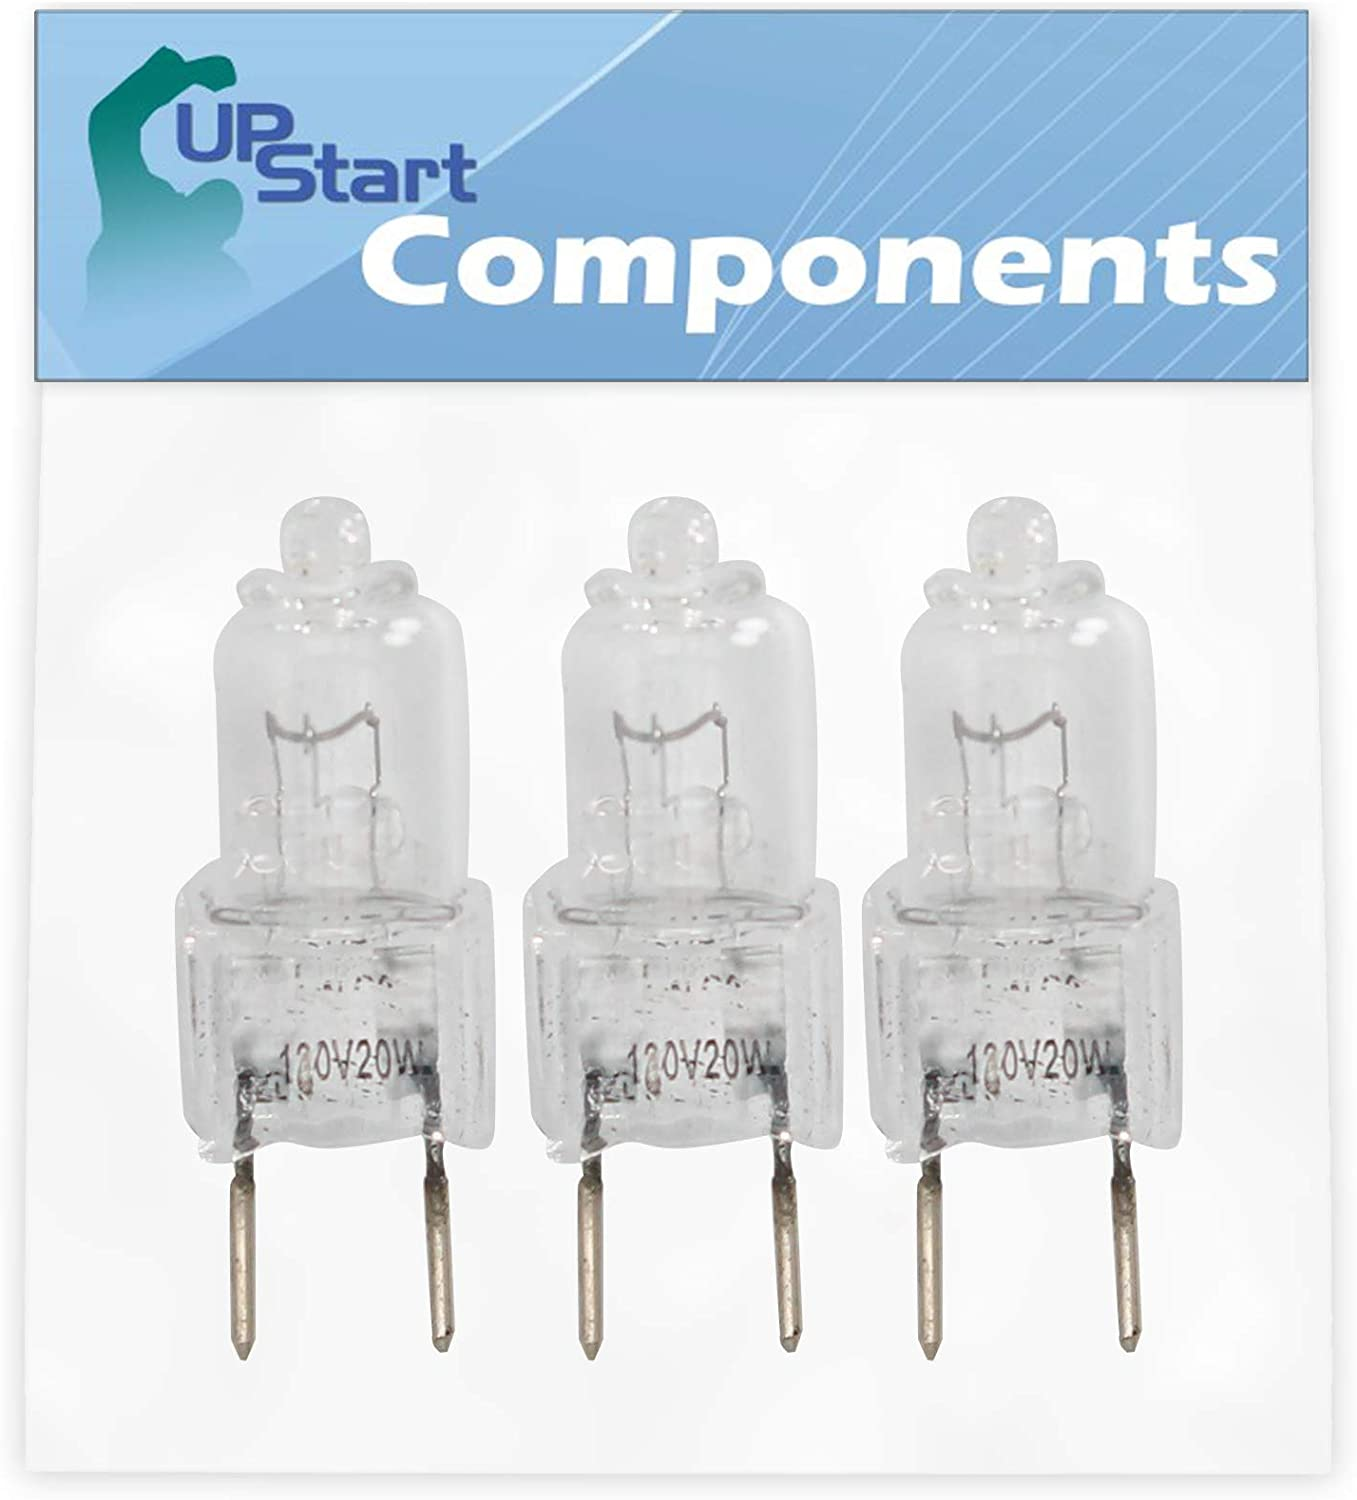 3-Pack 4713-001165 Microwave Halogen Light Bulb Replacement for Kenmore/Sears 40185053010 Microwave - Compatible with Samsung 4713-001165 Light Bulb